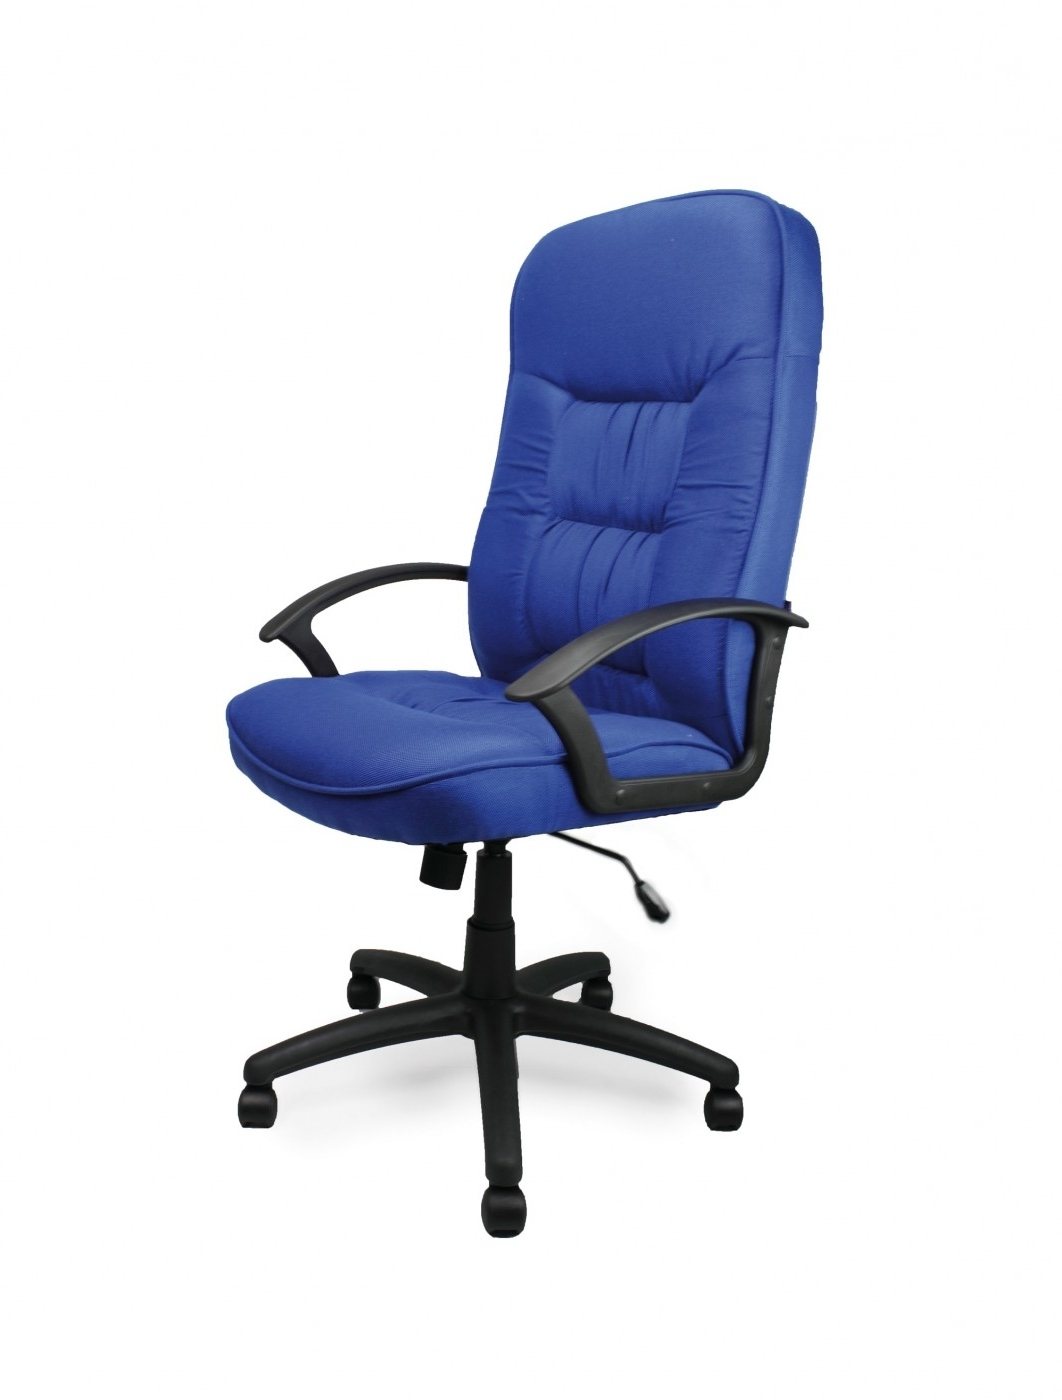 Coniston Fabric High Back Executive Office Chair 6062Atgf (View 5 of 20)